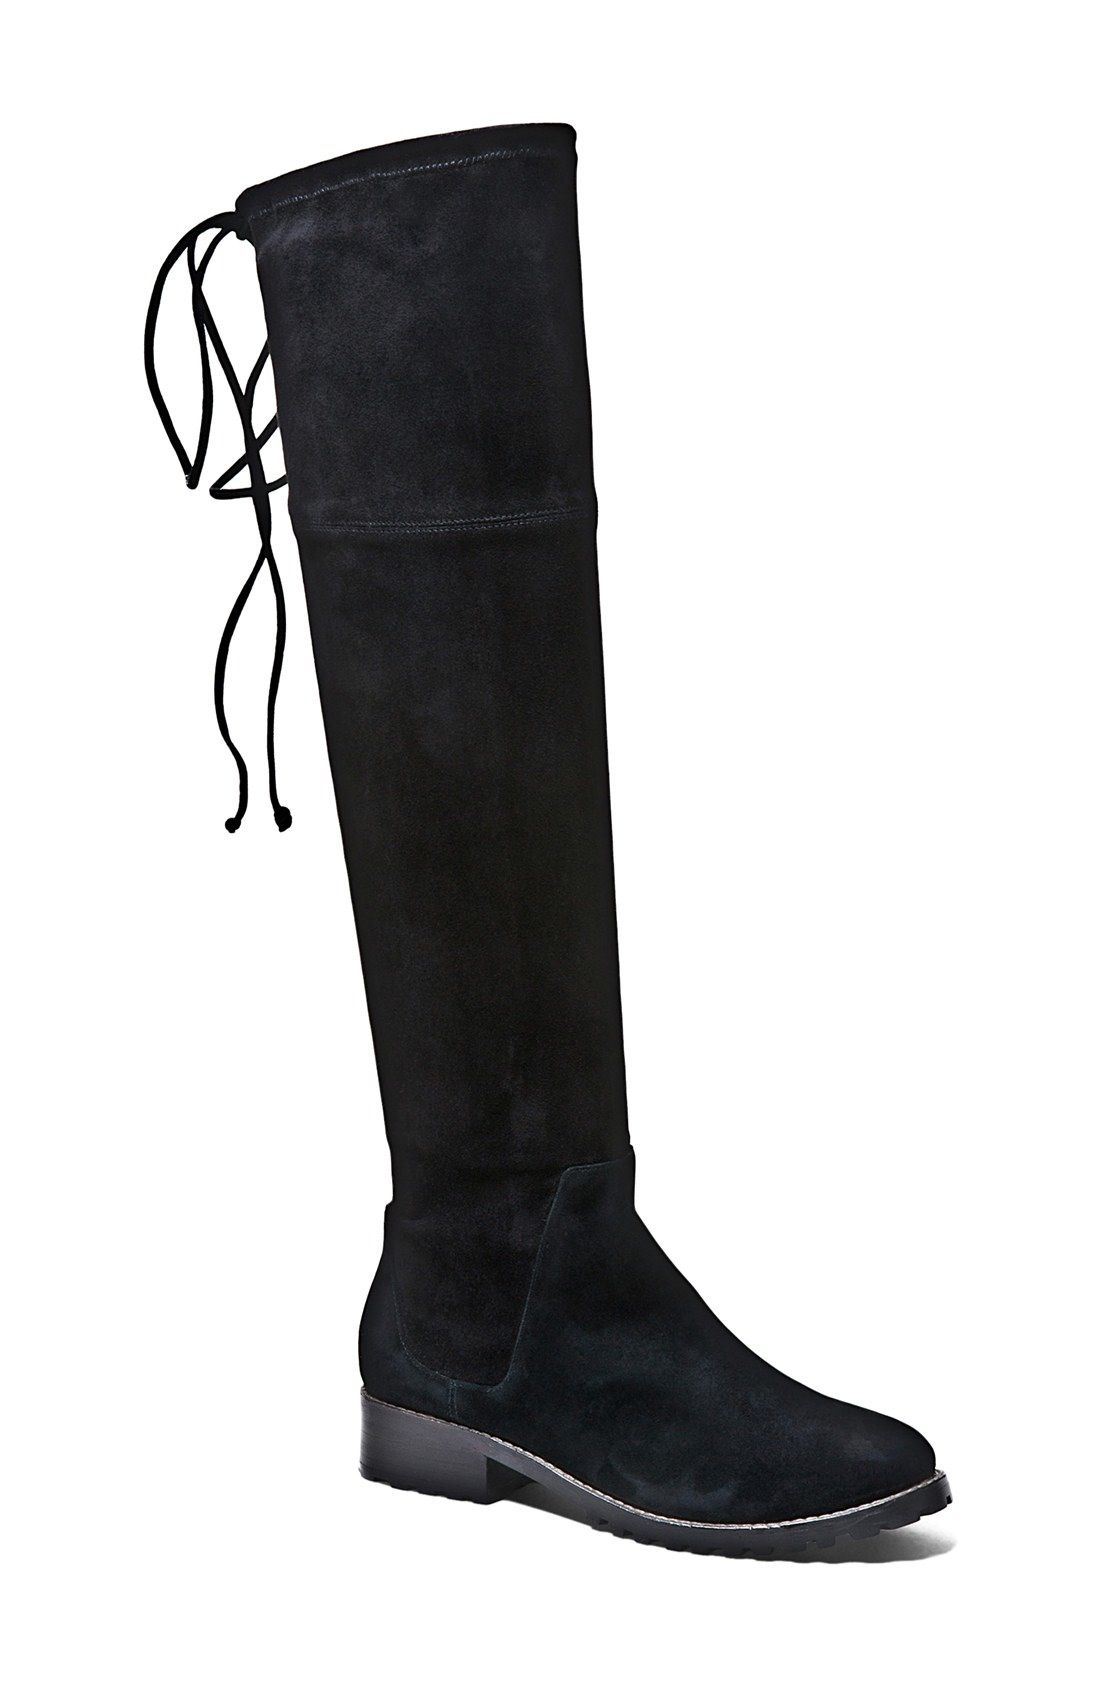 The Blondo At Knee Over women 'snow' Boot Waterproof Available 4rqEr